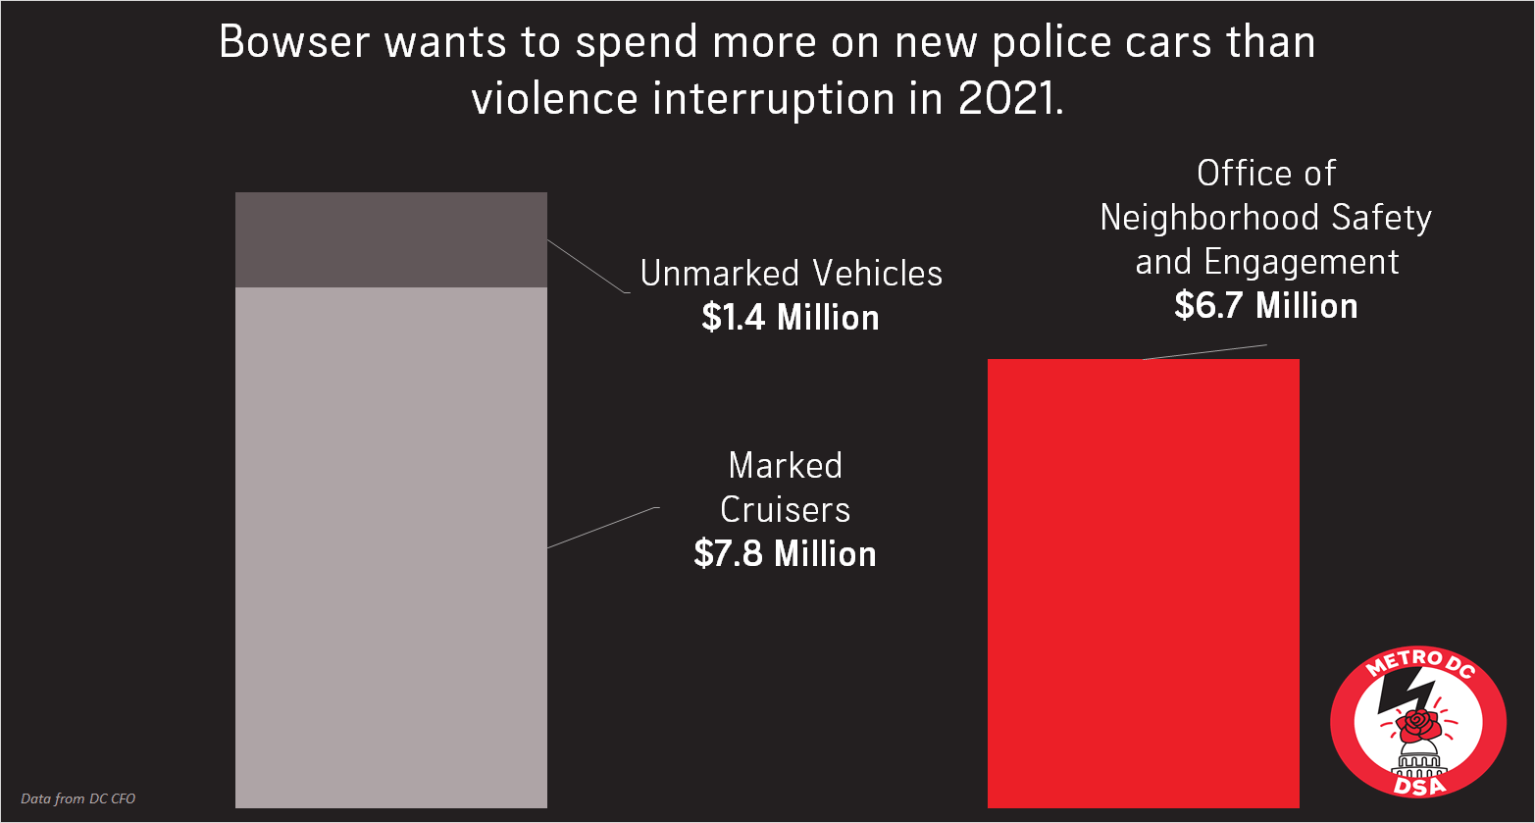 Bowser wants to spend more on new police cars than violence interruption in 2021. 7.8 million is planned for marked cruisers, and an additional 1.4 million is planned for unmarked police vehicles. This is compared to the Office of Neighborhood Safety and Engagement budget of 6.7 million.